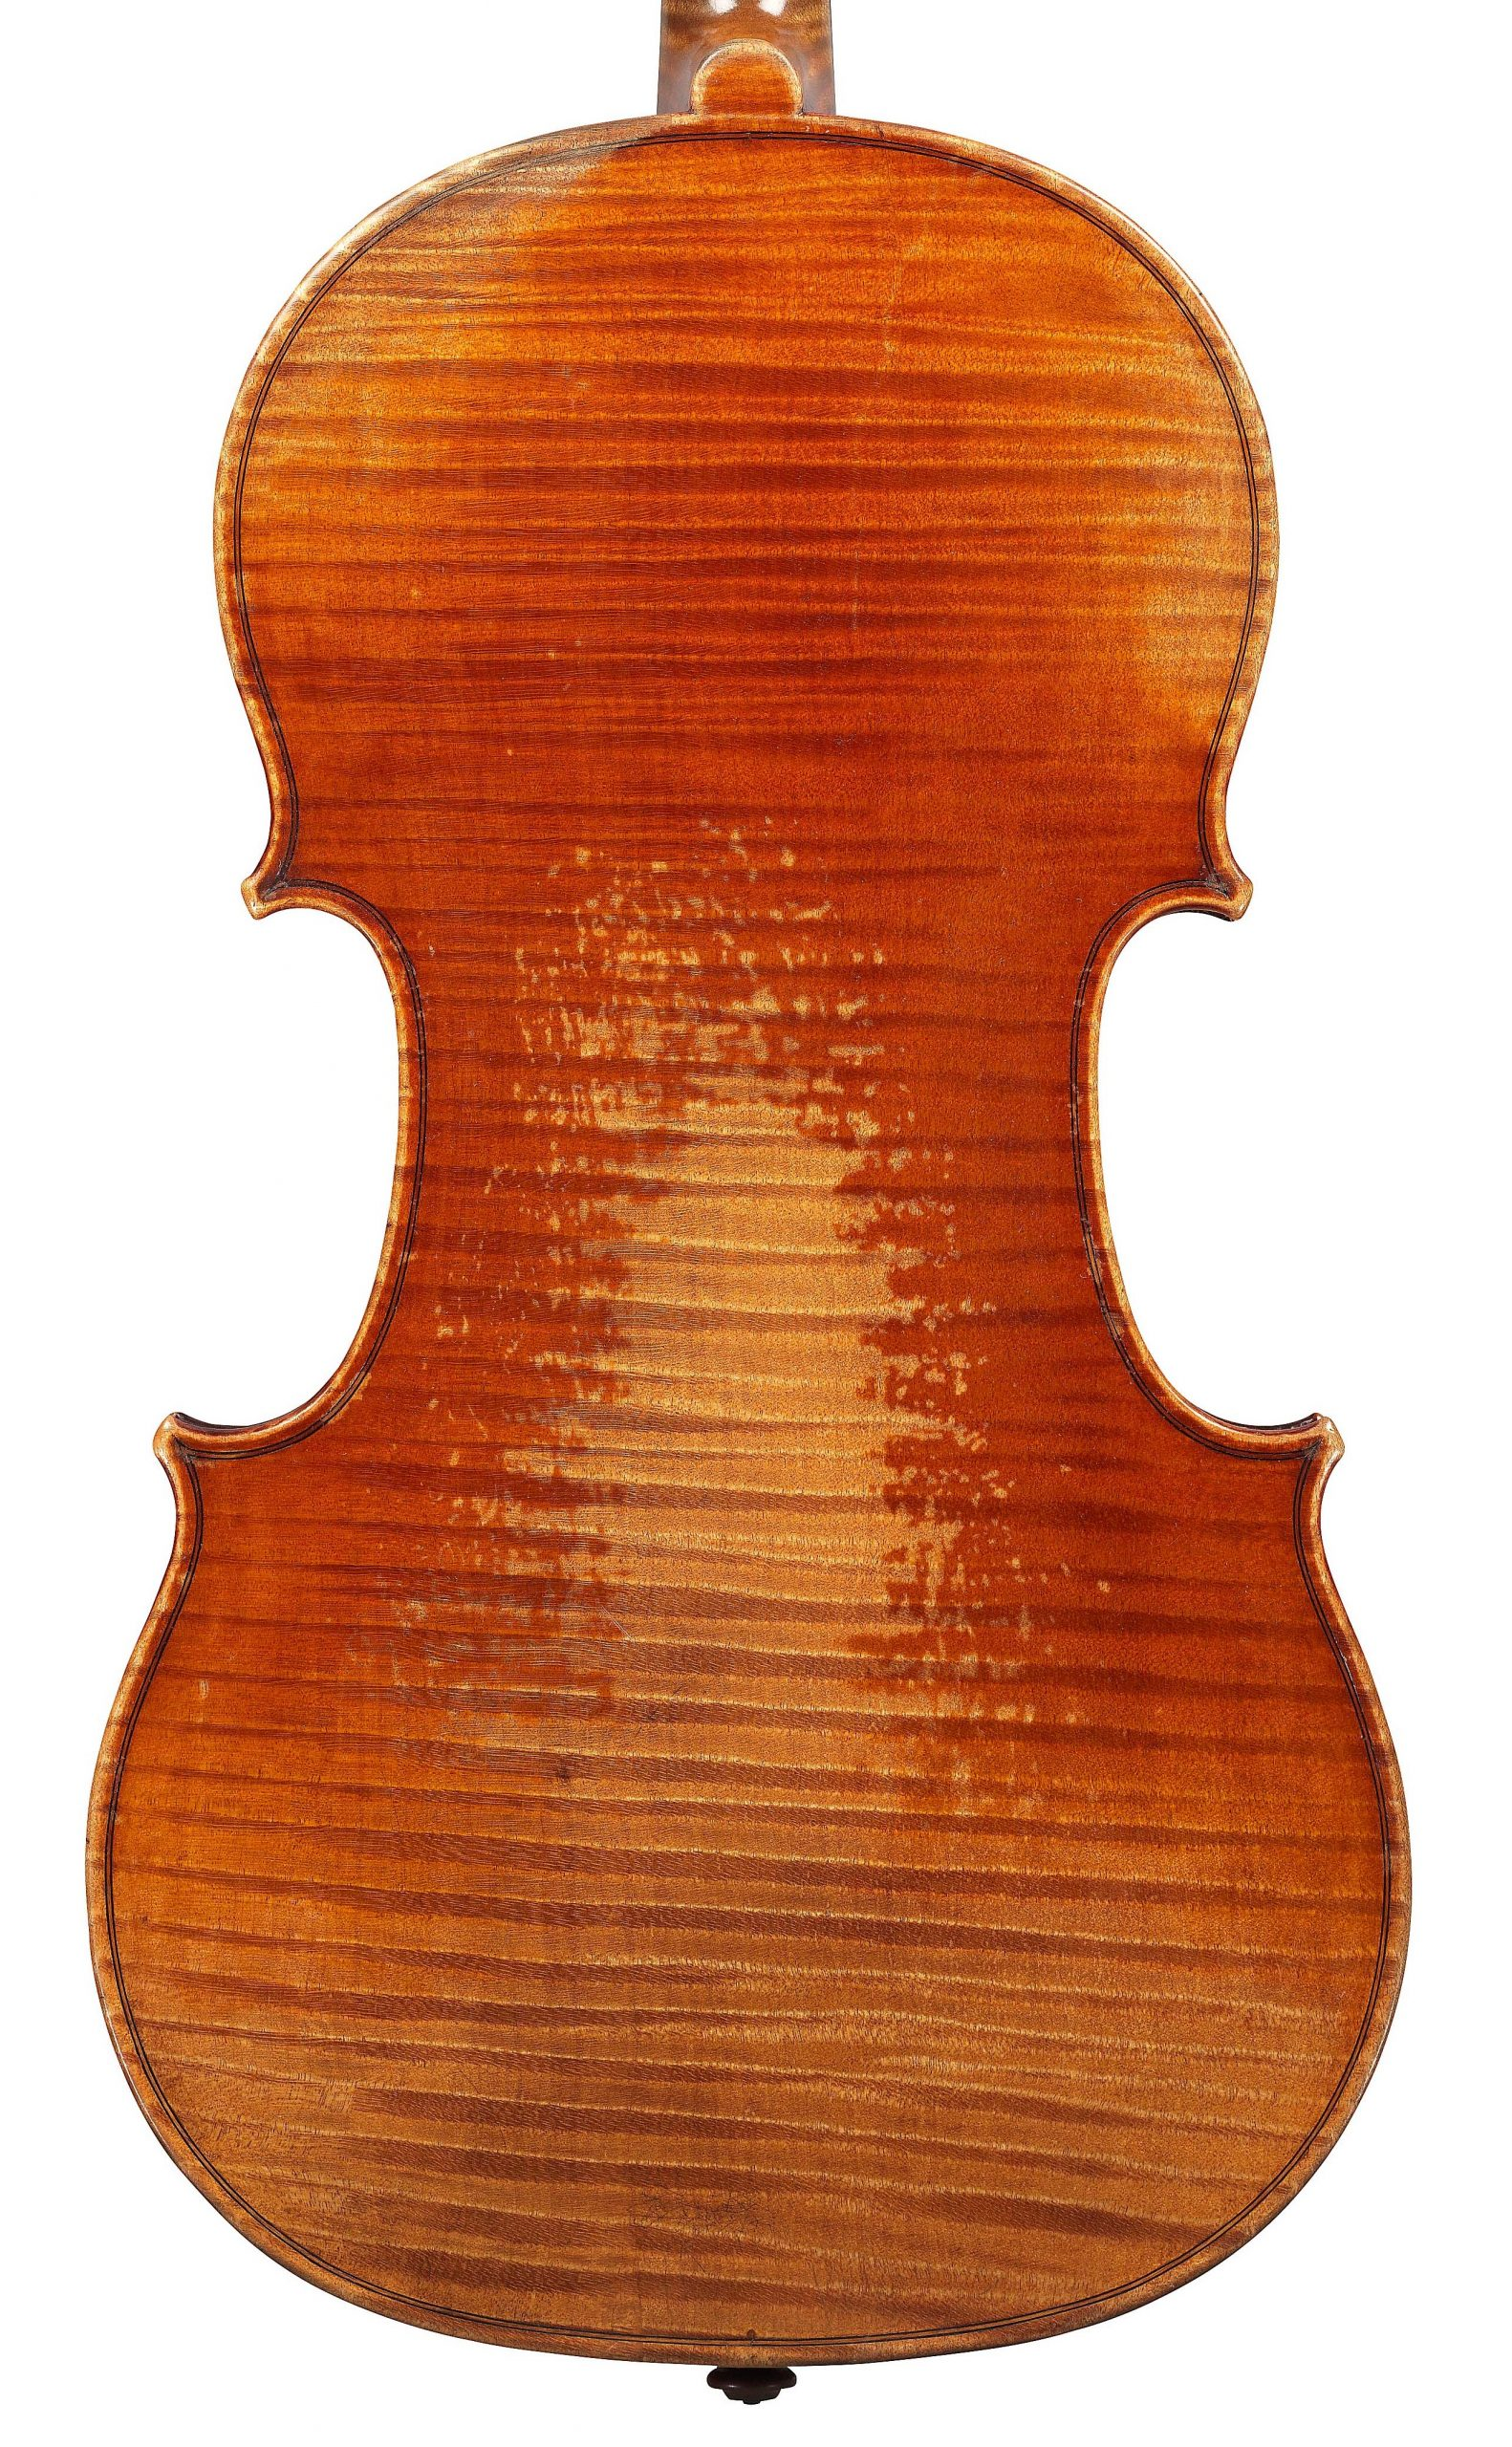 Viola by JB Vuillaume, dated 1859, ex-Karrman, exhibited by Ingles & Hayday at Sotheby's in 2012